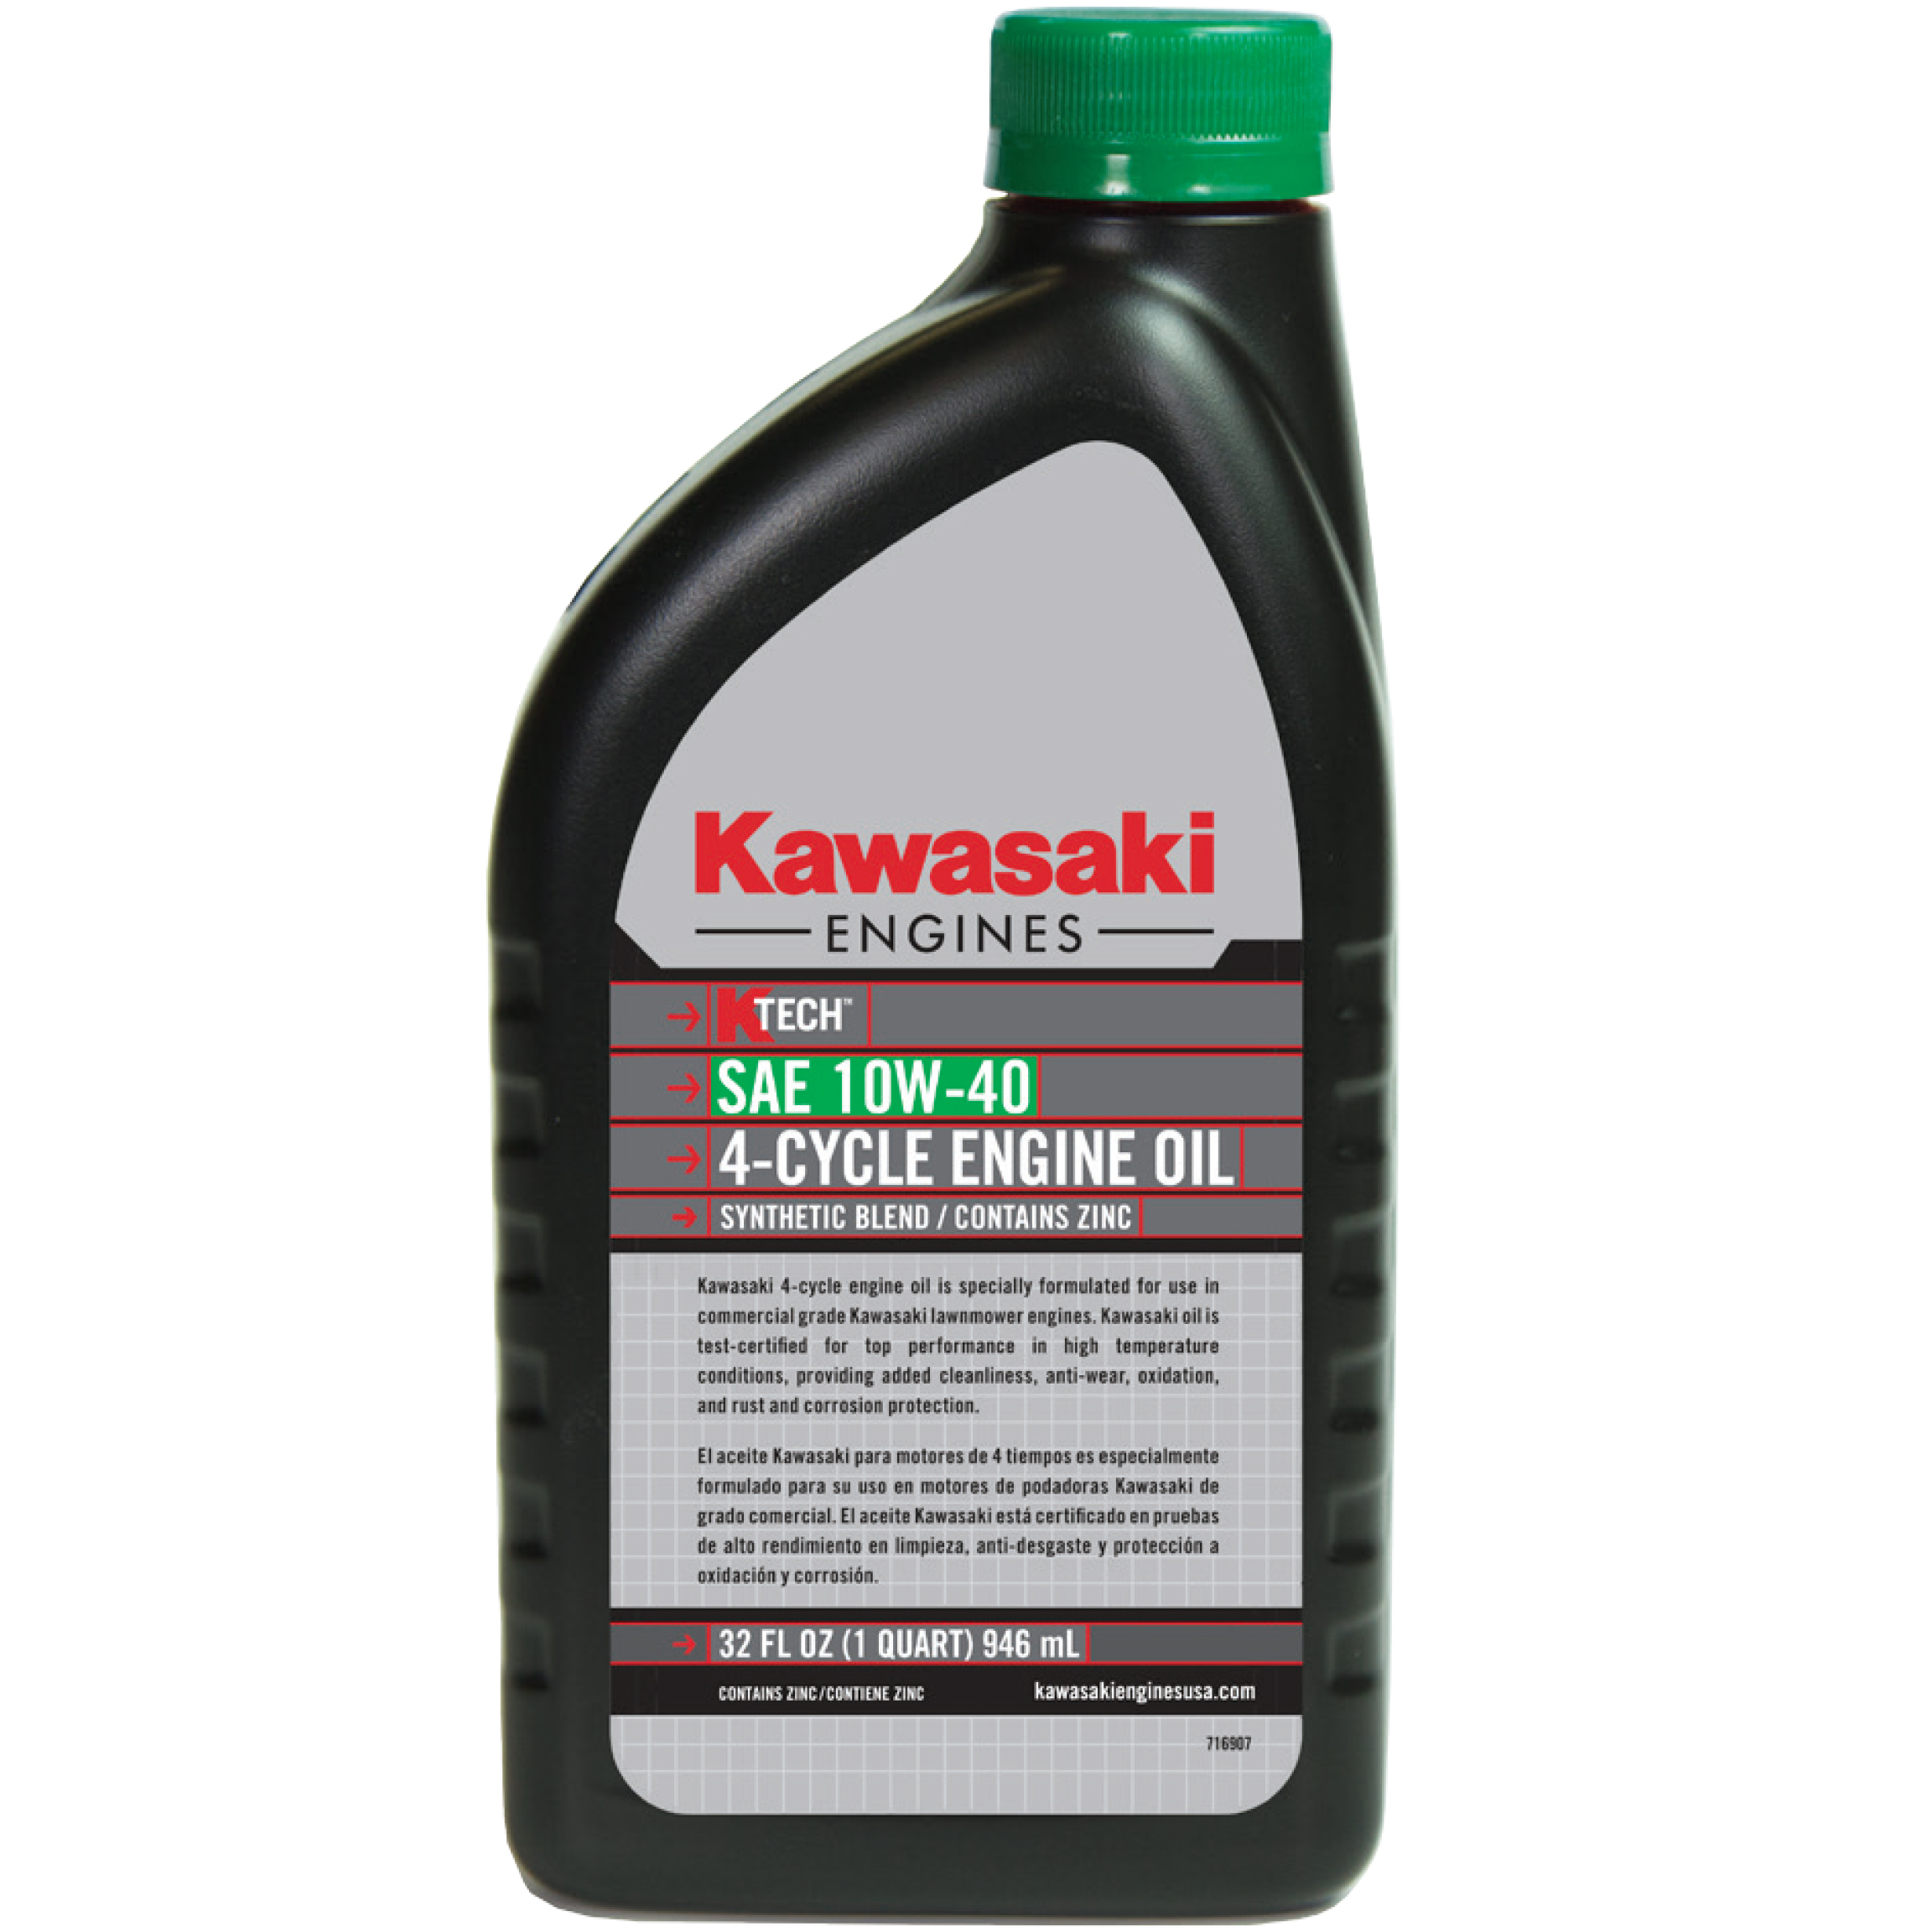 SAE 10W-40 4 Cycle Oil 1 Quart Bottle 99969-6296